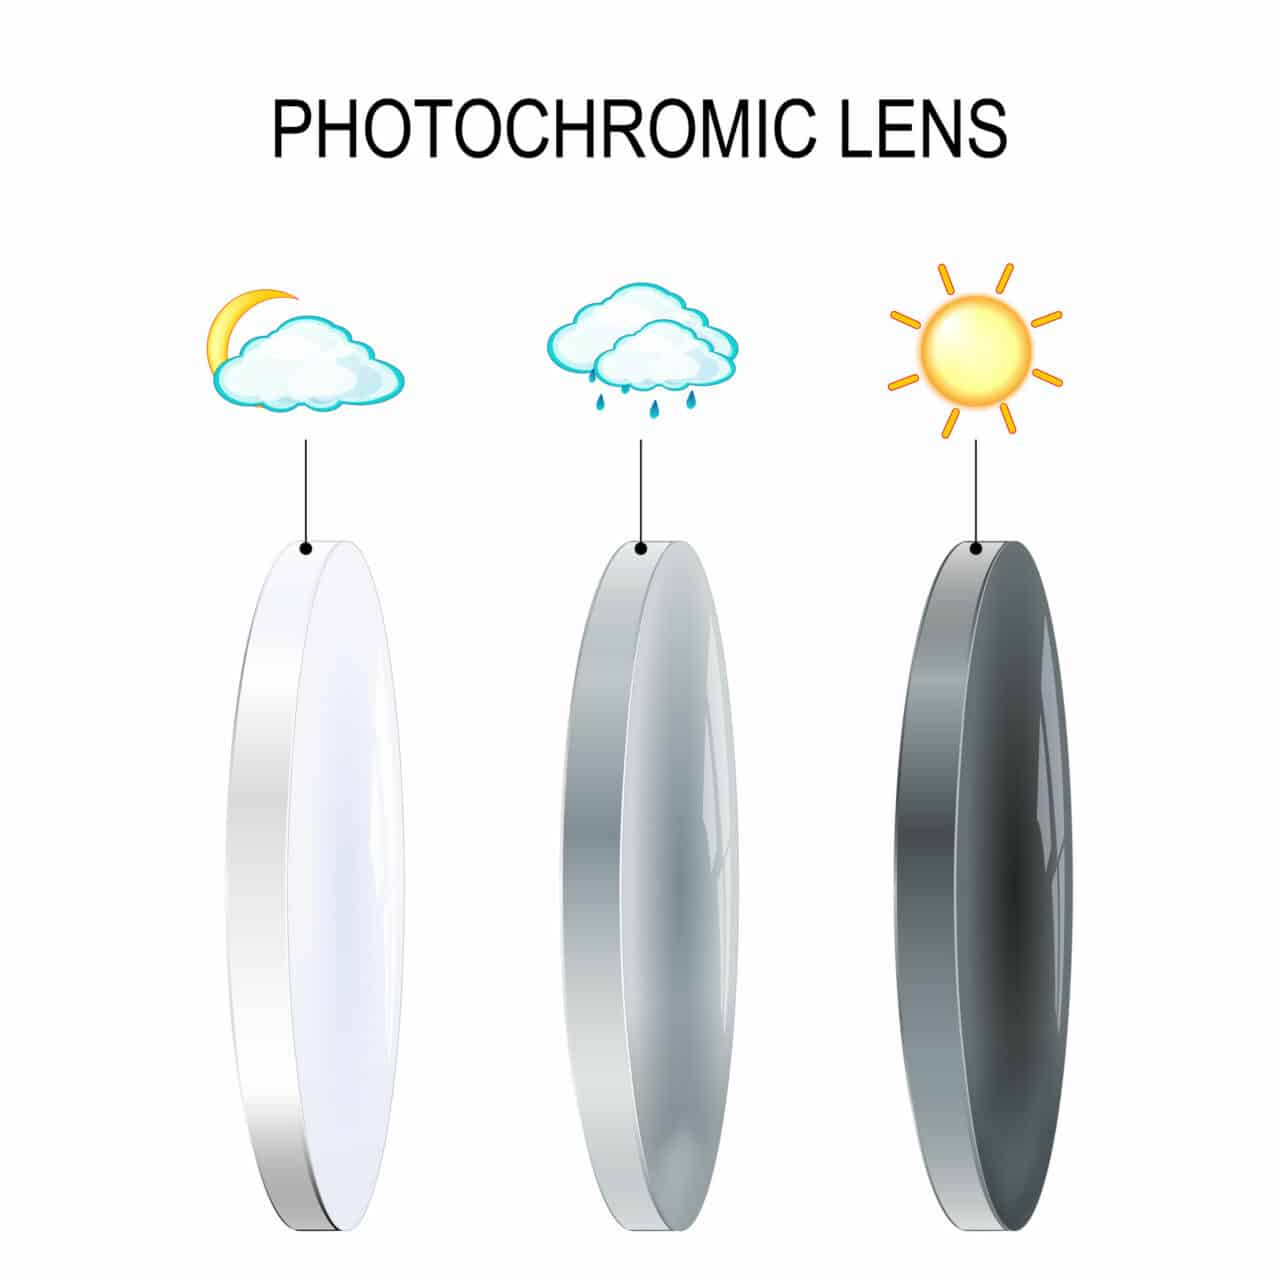 Photochromic Lens